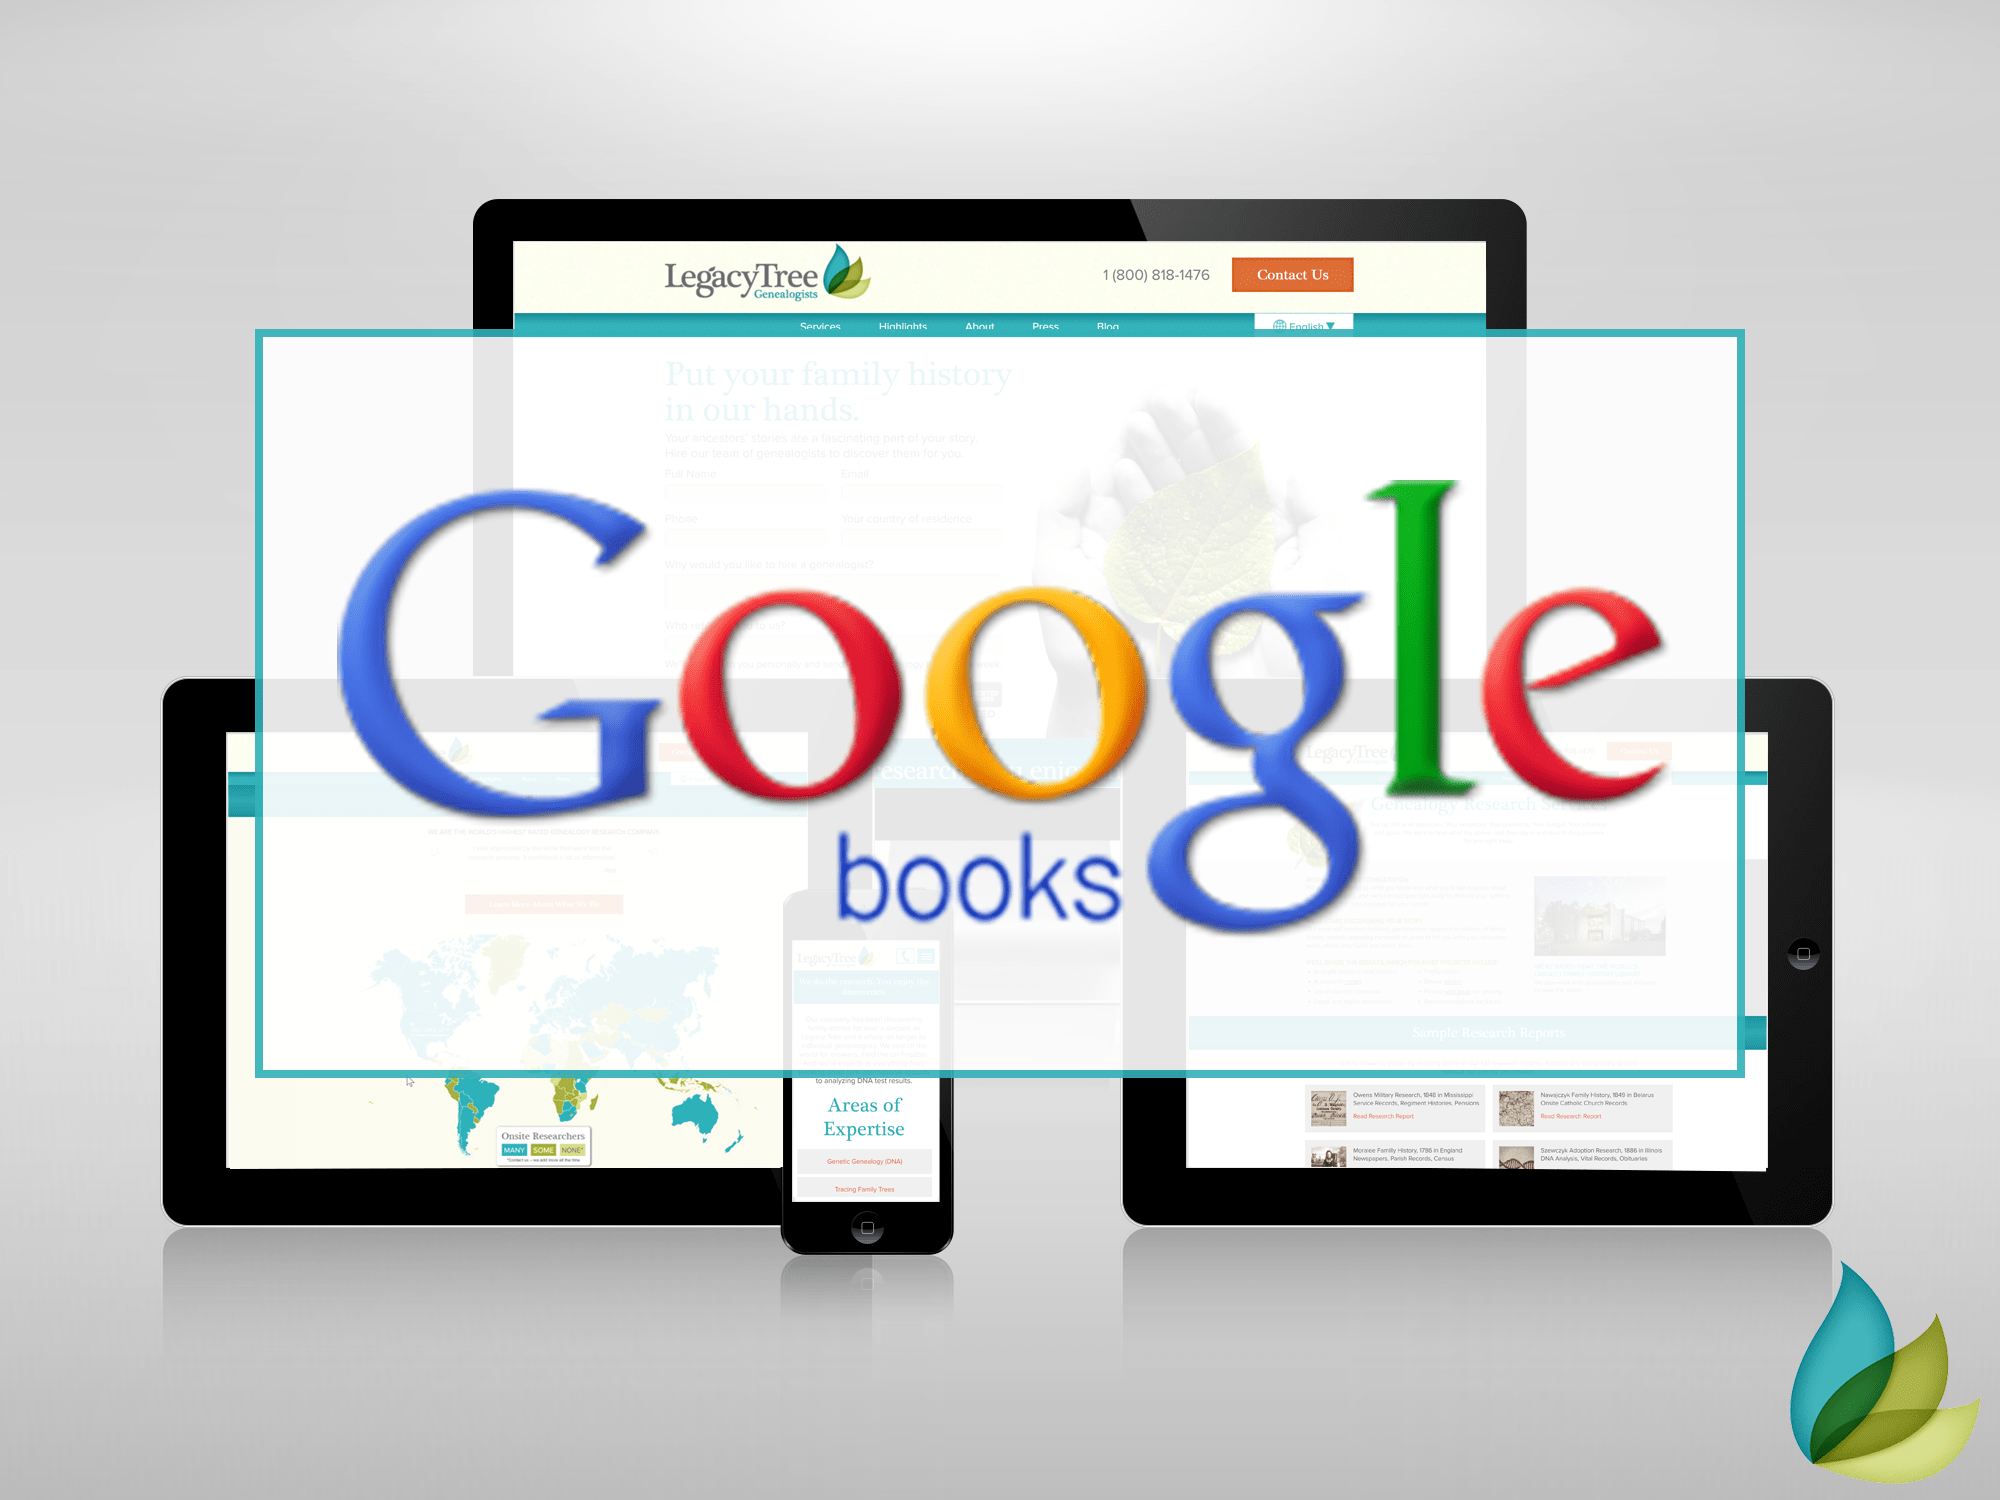 google books genealogy research untapped 2000 tree resource legacy genealogists